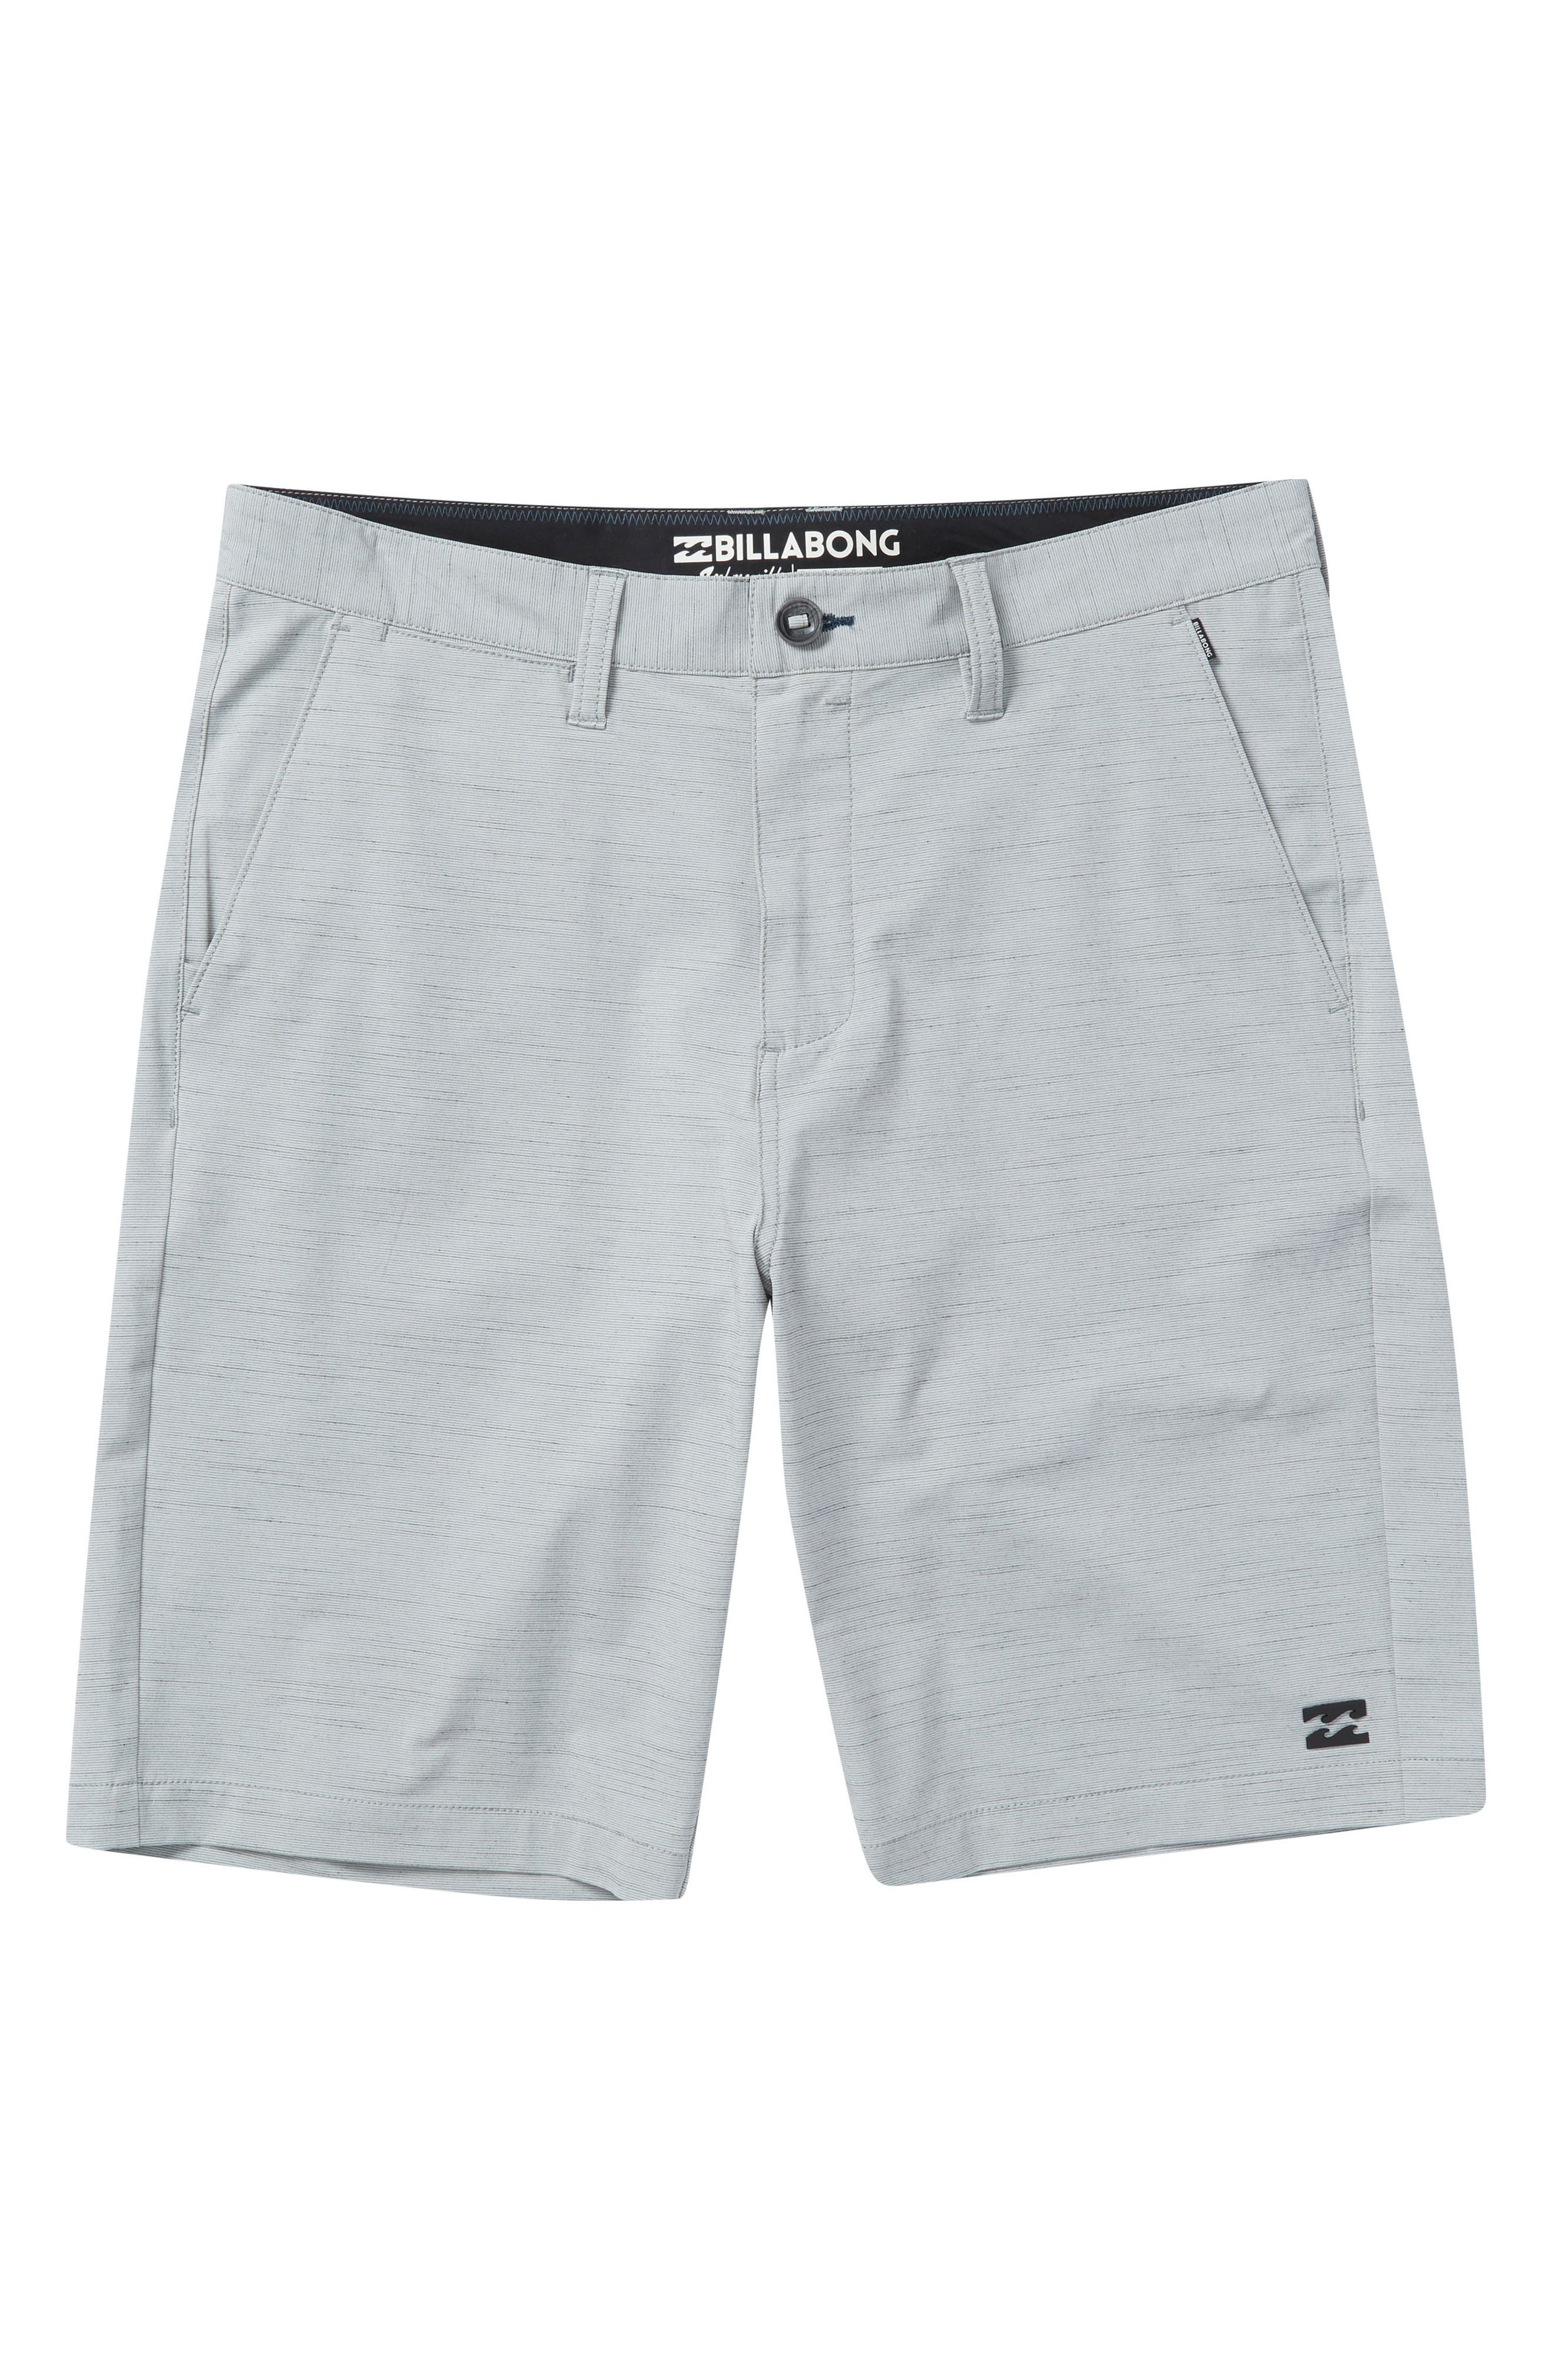 Crossfire X Hybrid Shorts,                         Main,                         color, Silver